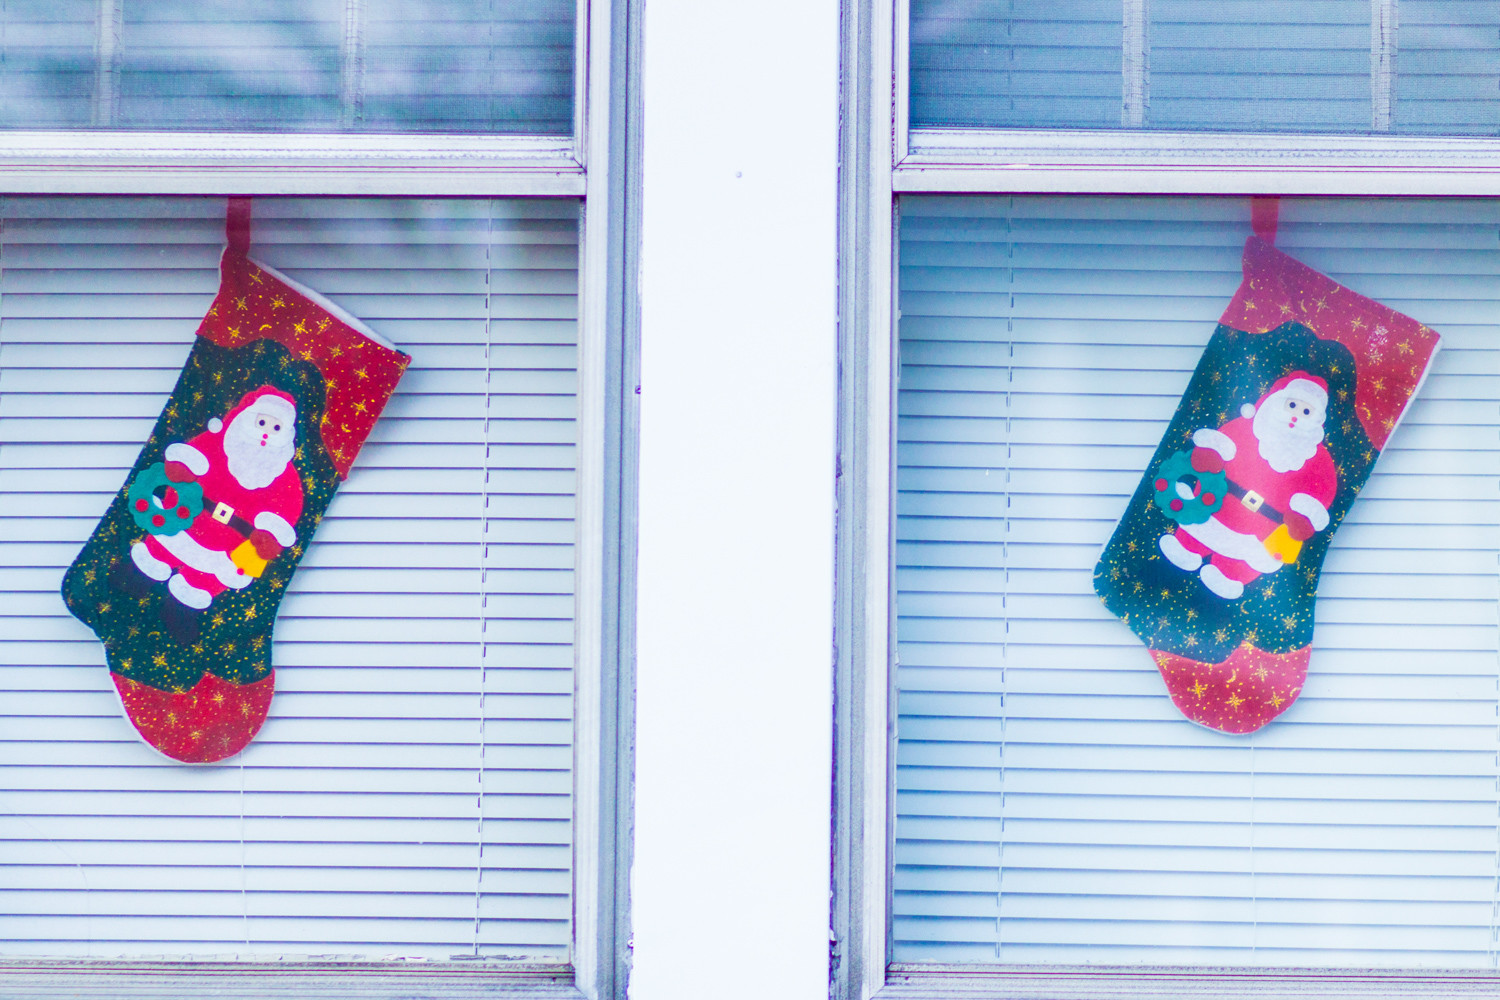 Christmas stockings hang in the windows of a home.